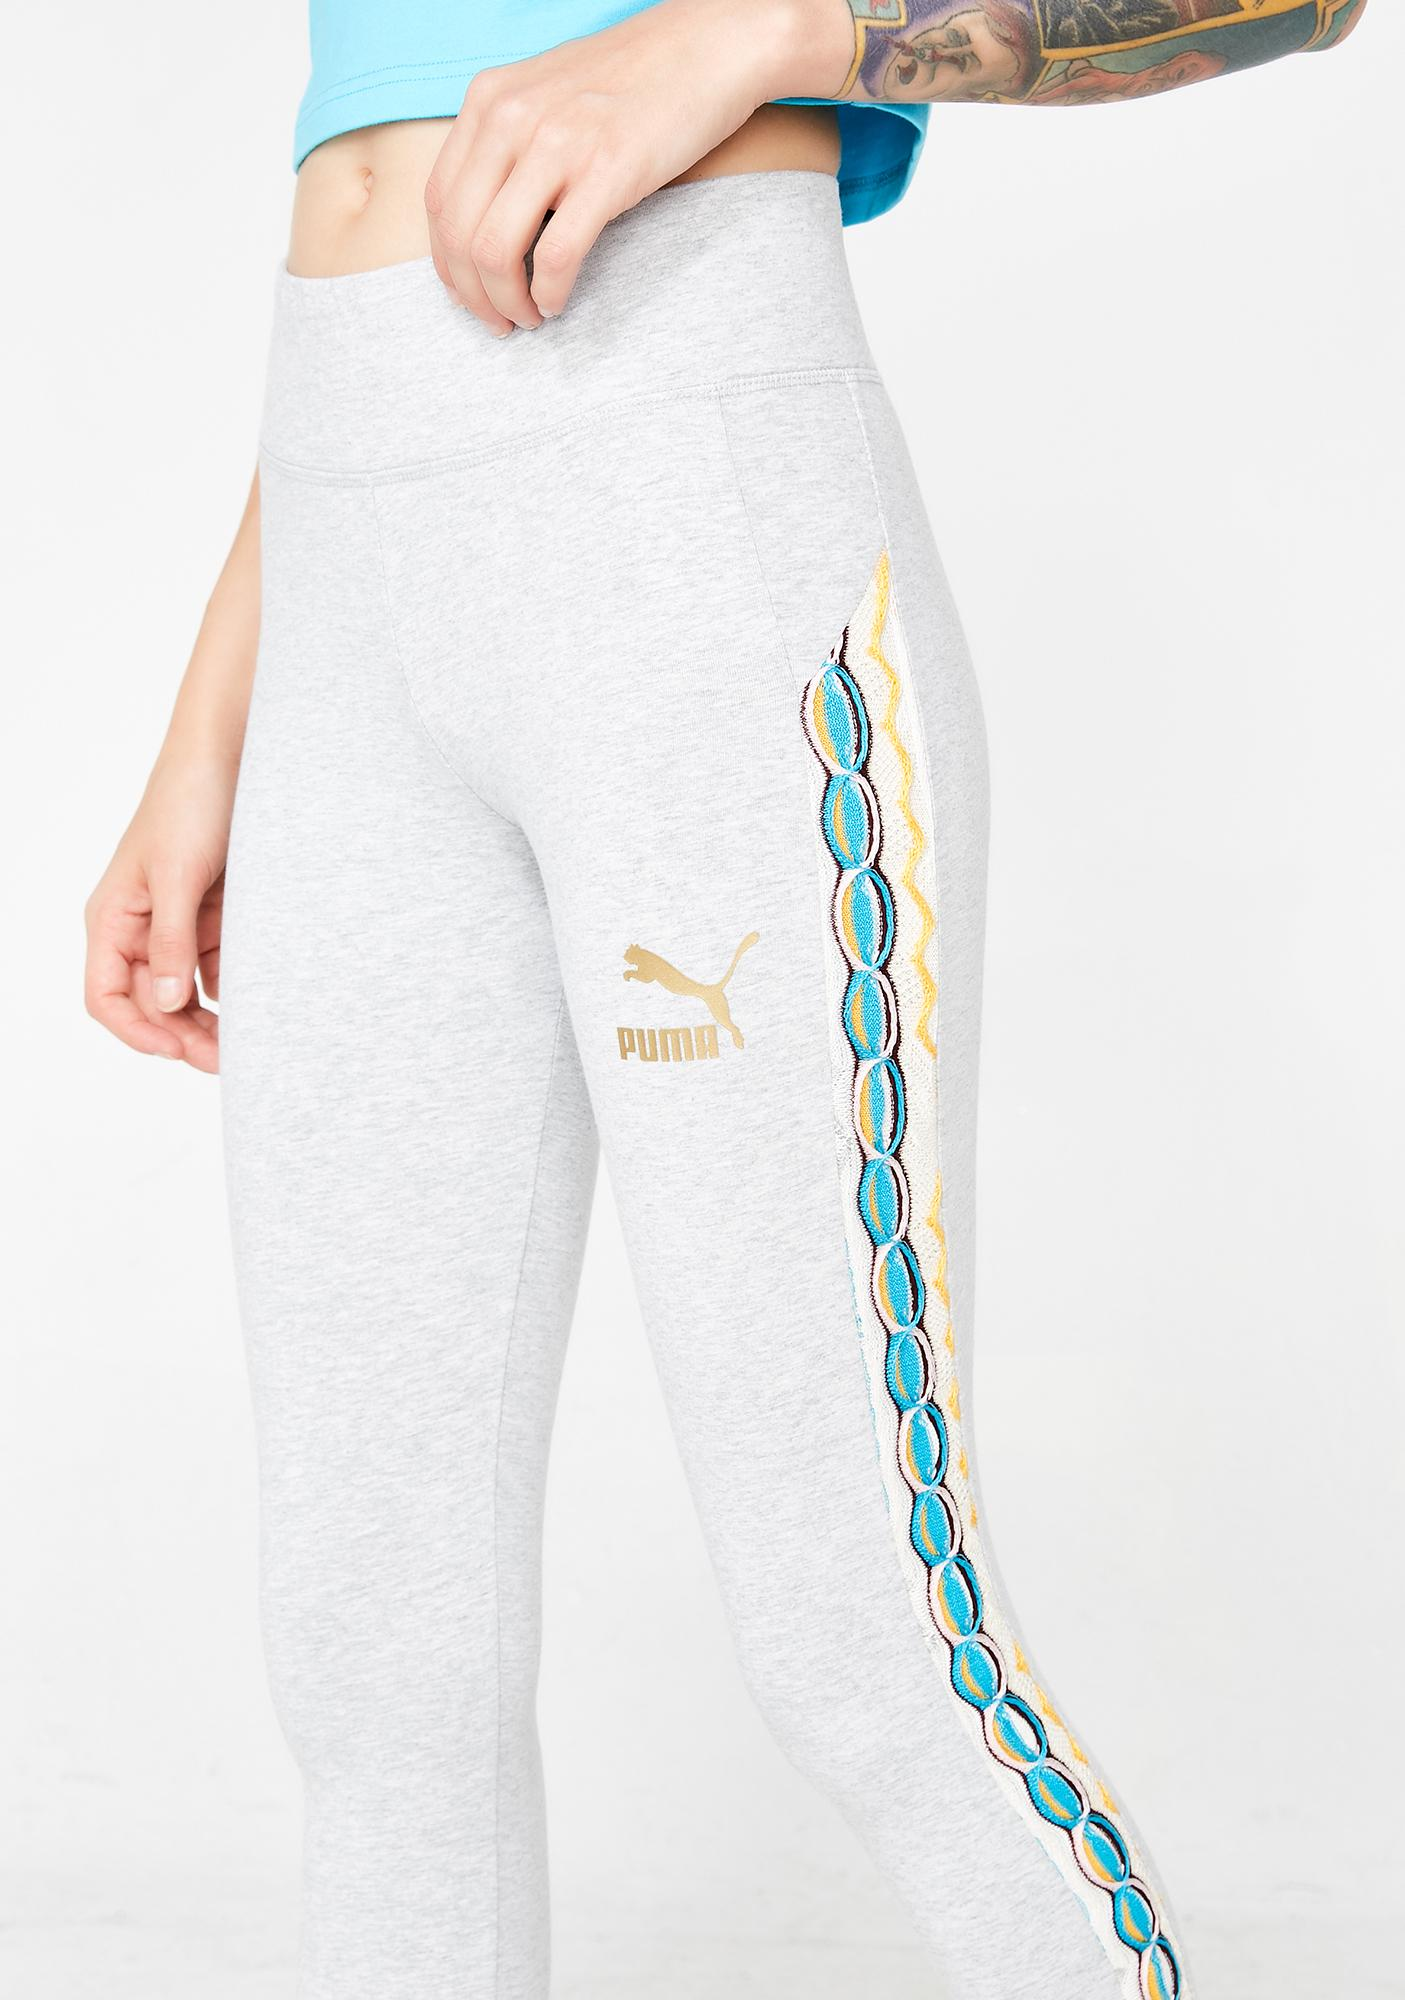 PUMA X Coogi Leggings